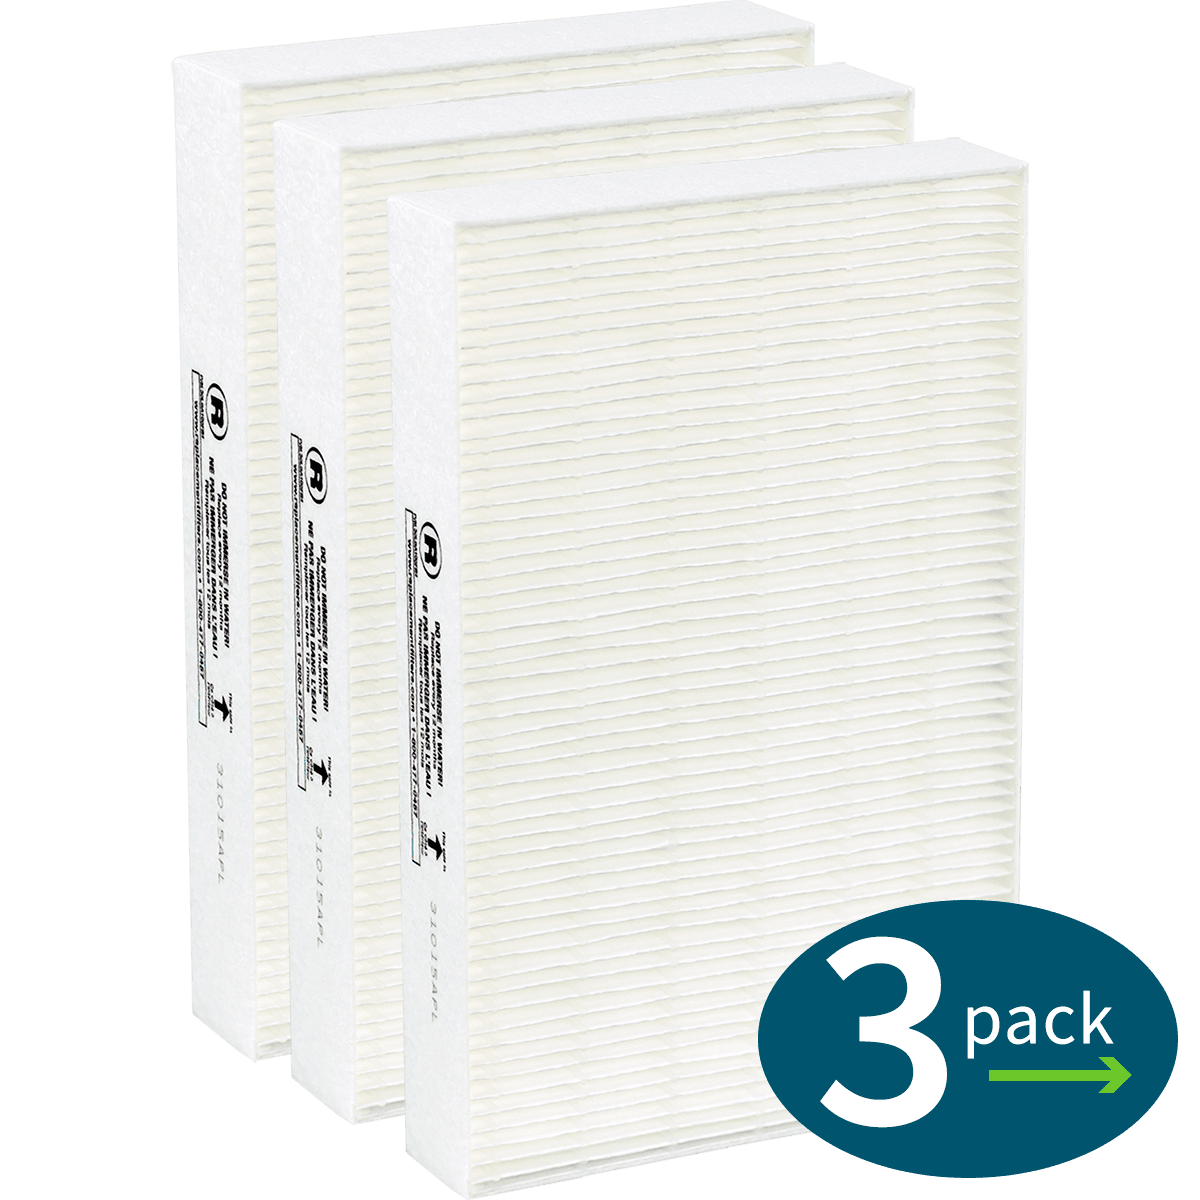 Honeywell True HEPA Replacement Filter R ho4071